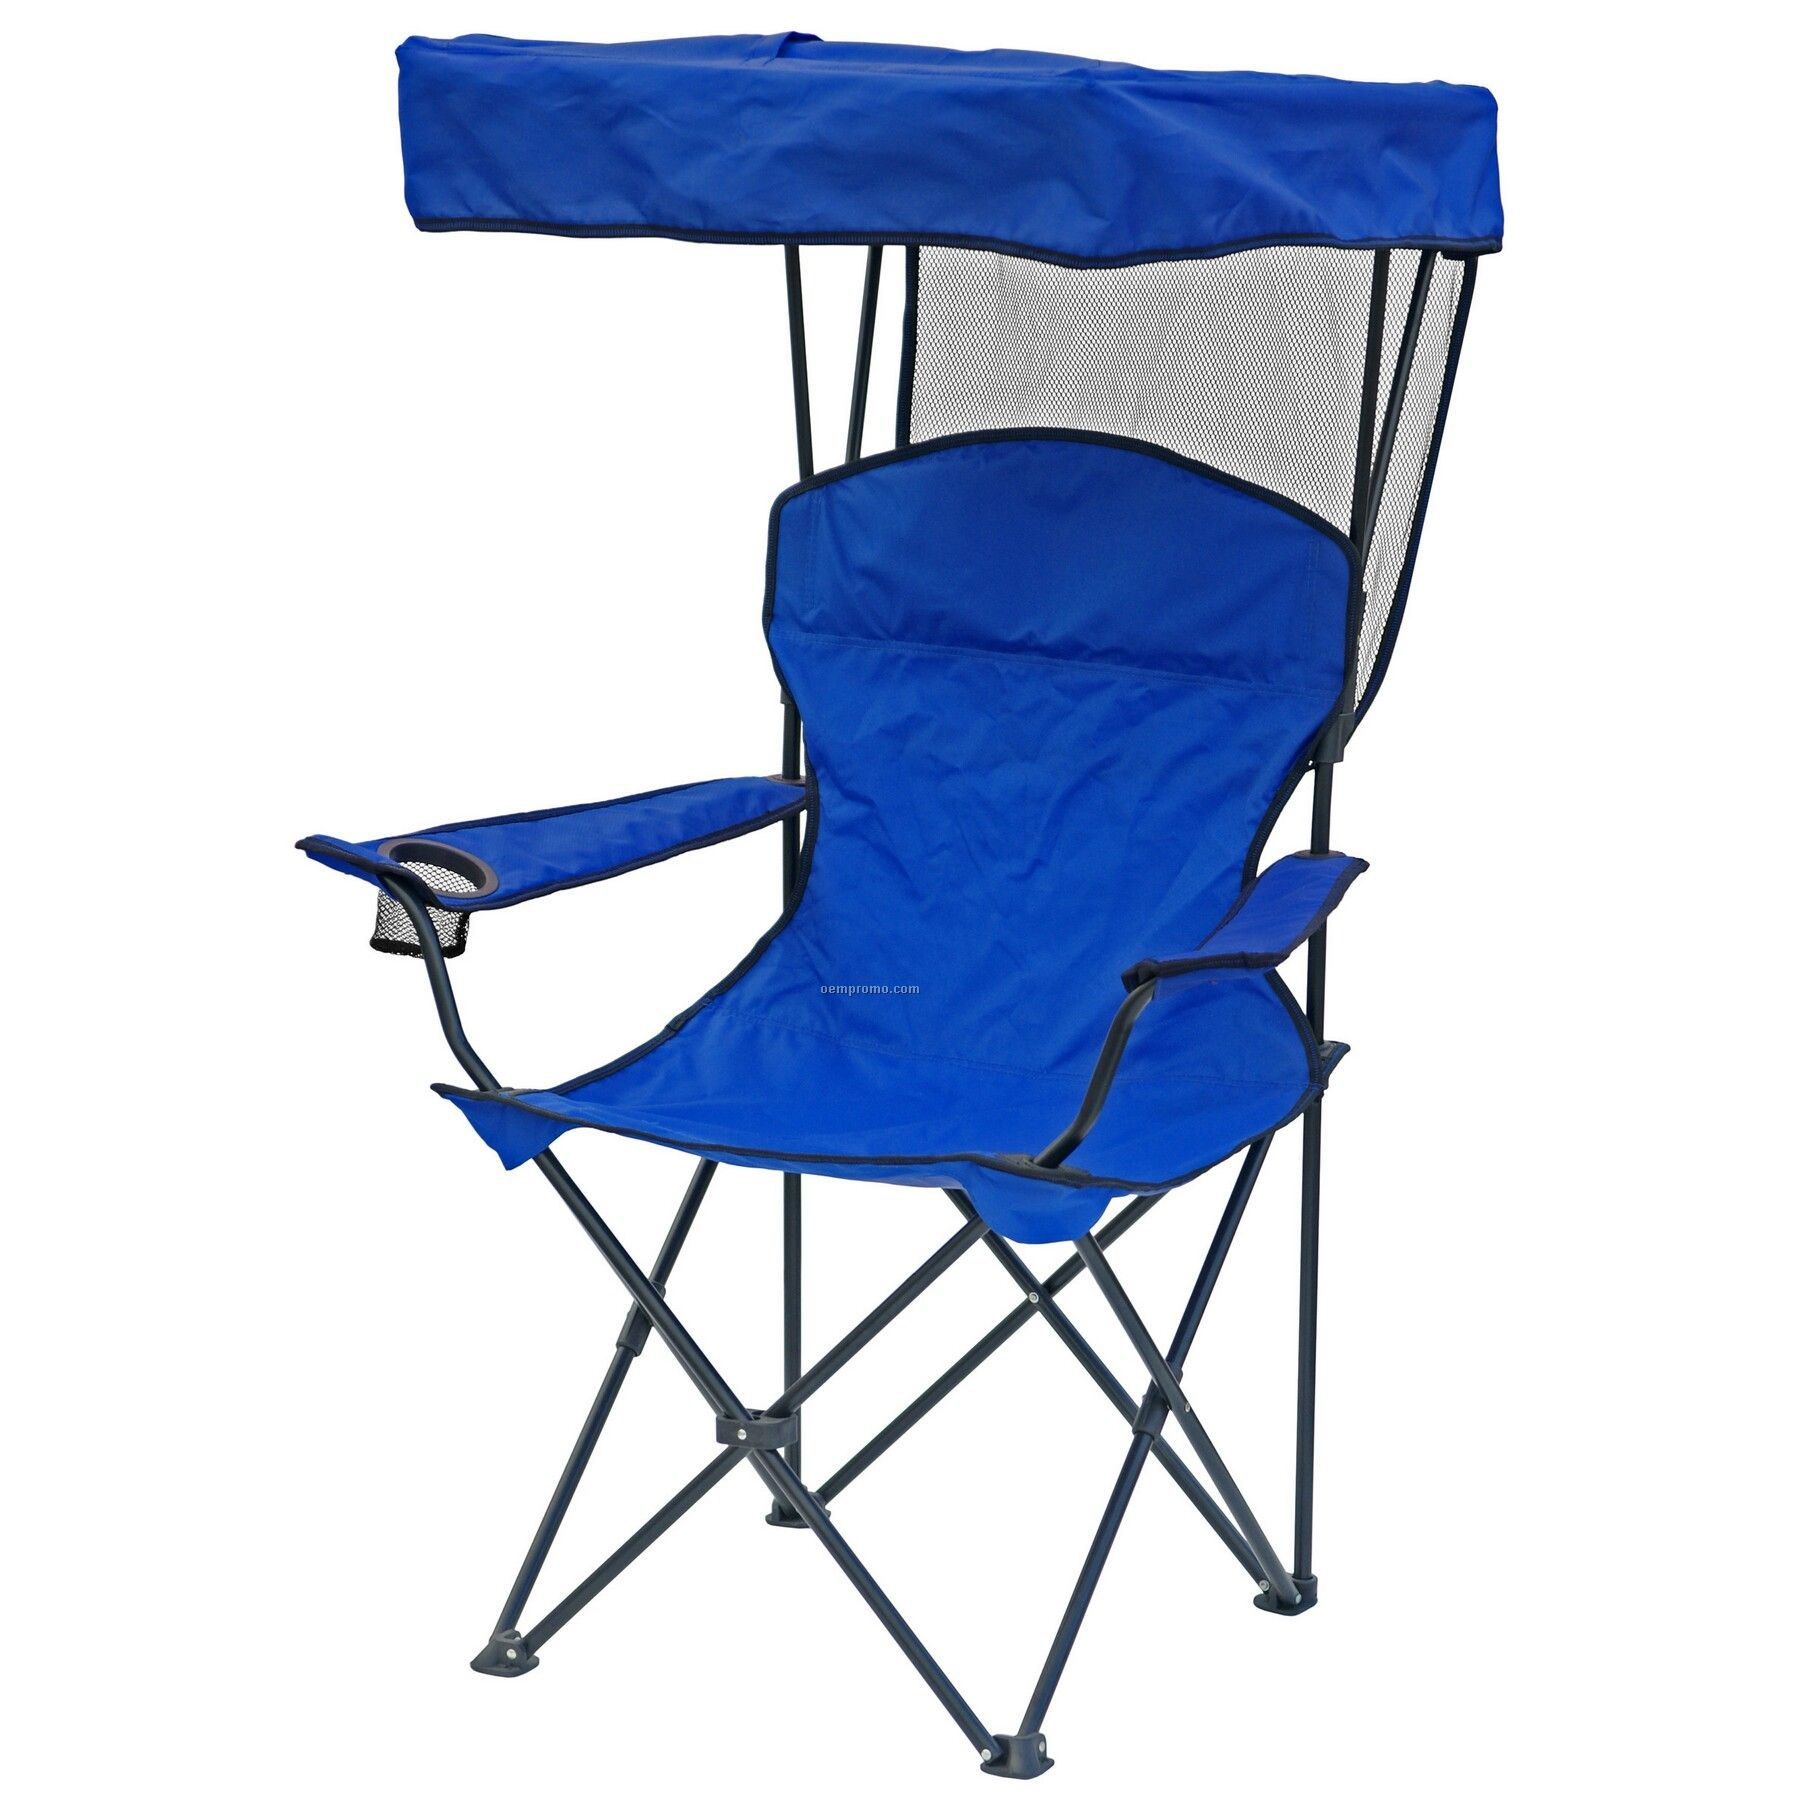 chair with canopy dog wheel direct import folding w arm rests and carry